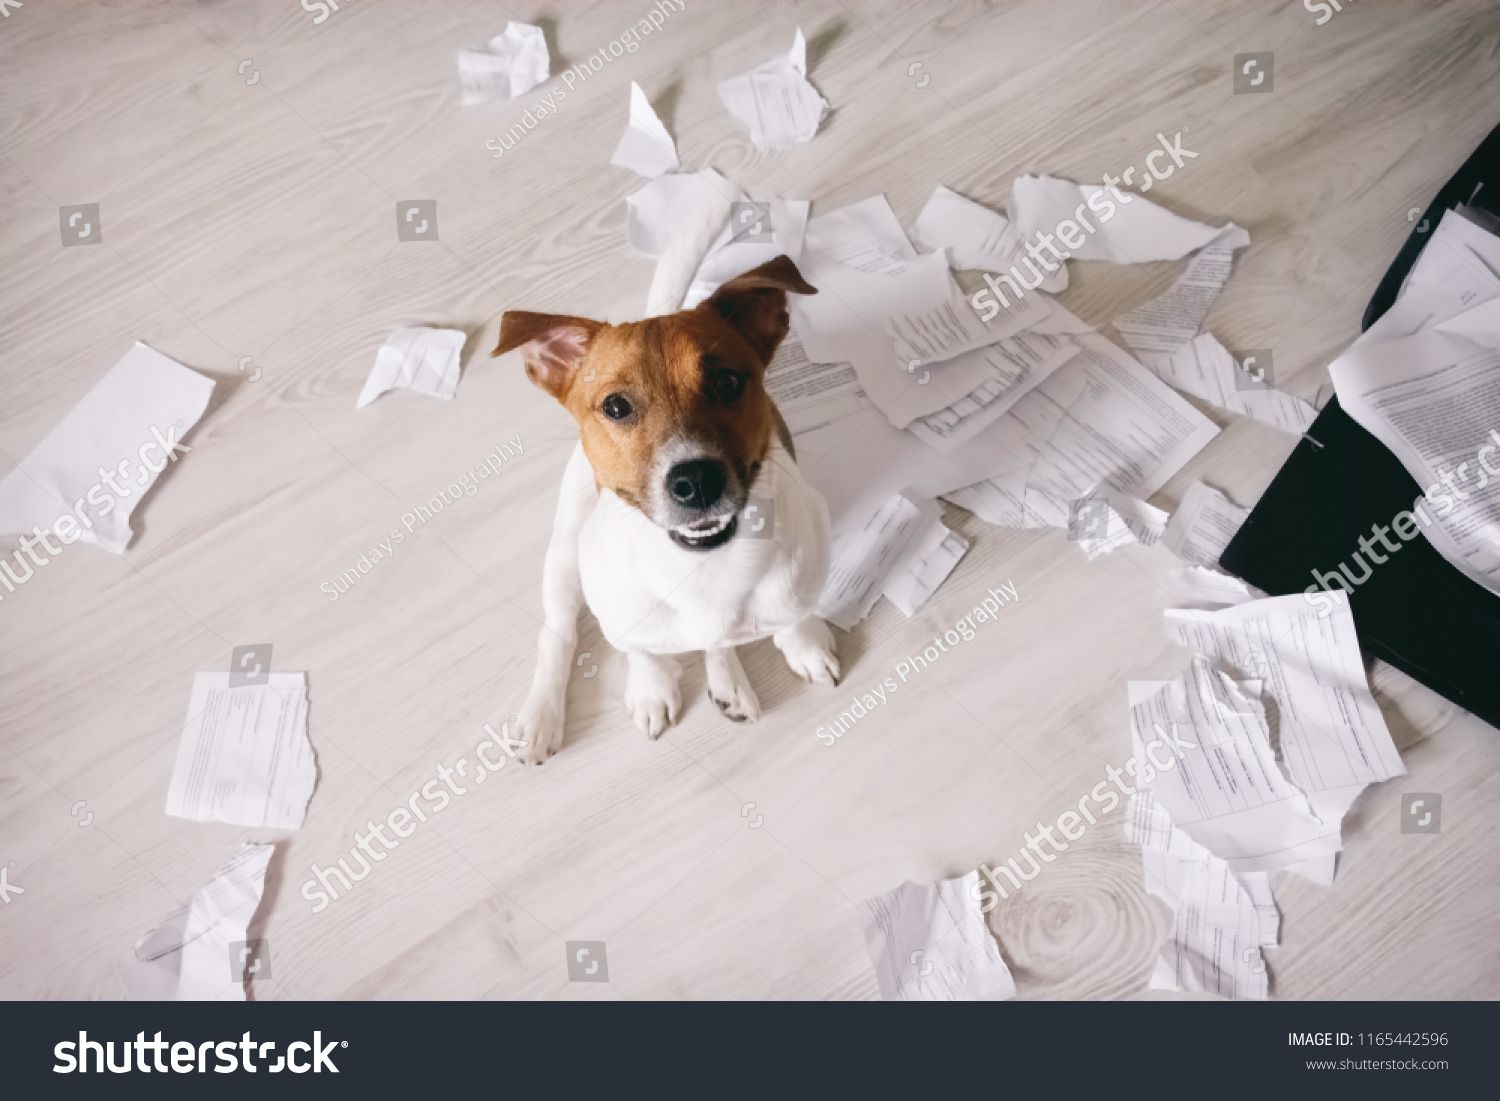 Bad Dog Shred Important Documents Naughty Pets At Home Bad Puppy Looking Up On His Owner An Bad Dog Business Cards Creative Templates Business Cards Creative